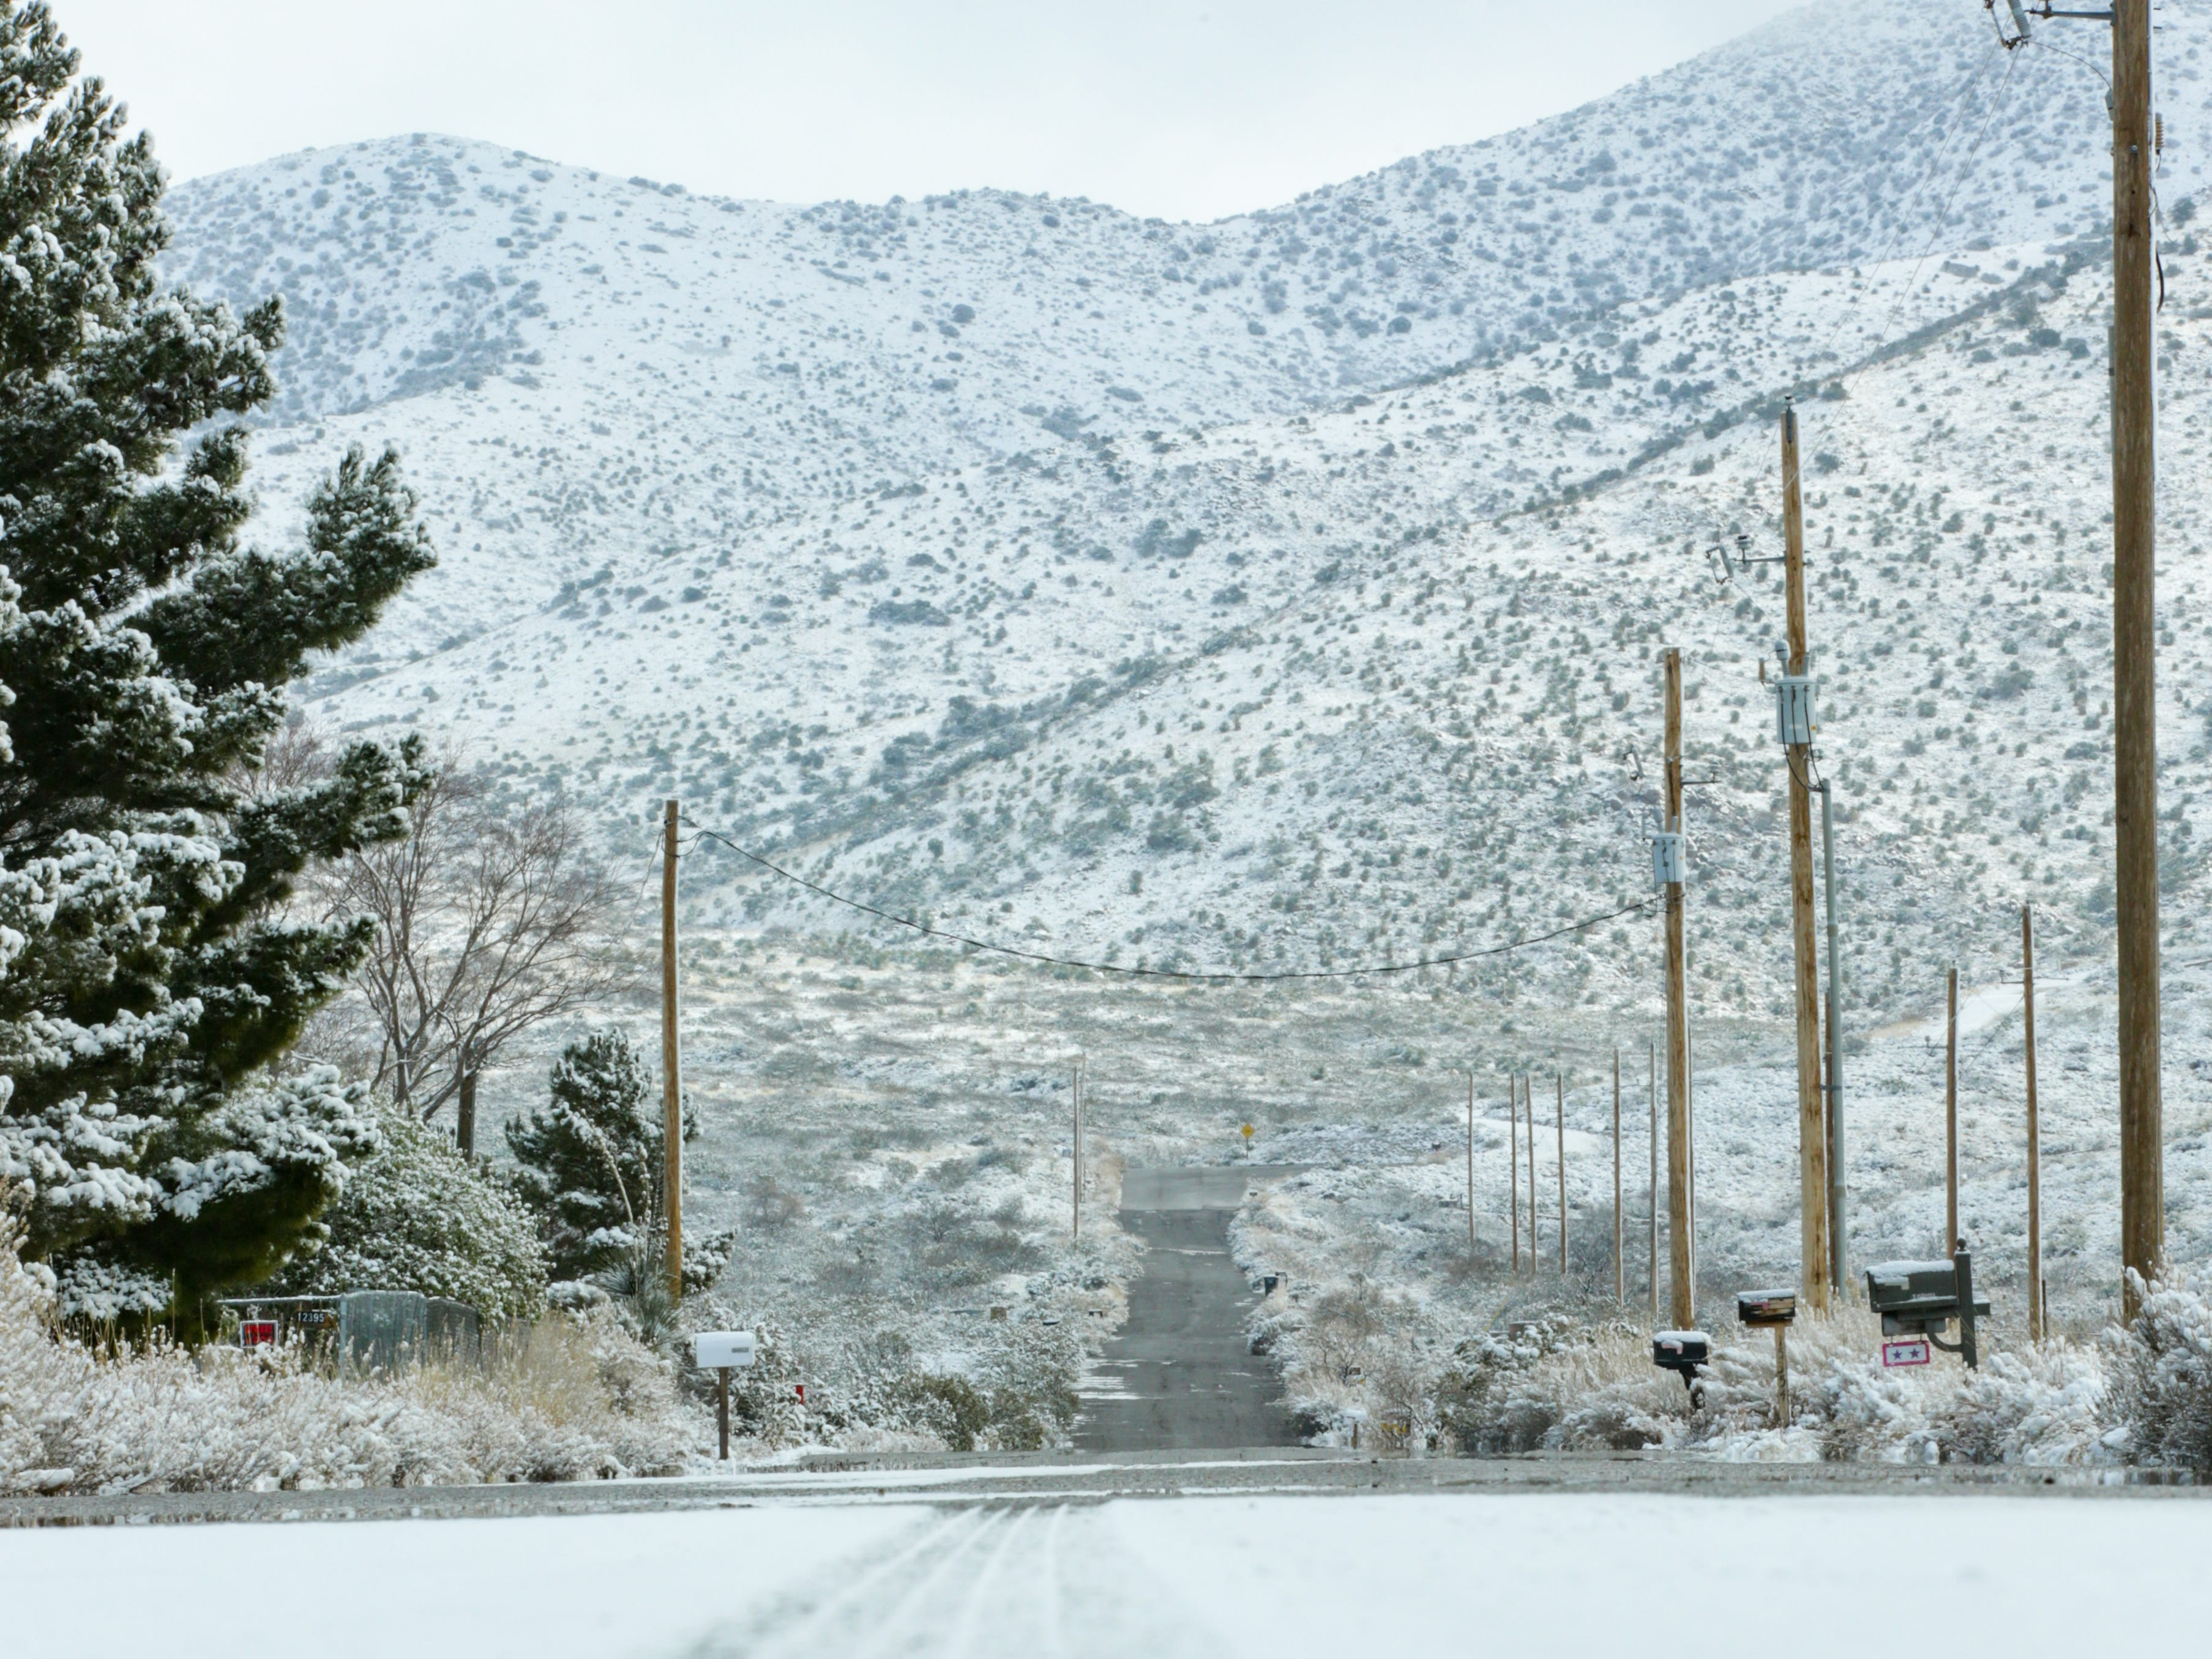 The Organ Mountains and surrounding area are covered with snow on Saturday Dec. 29, 2019.